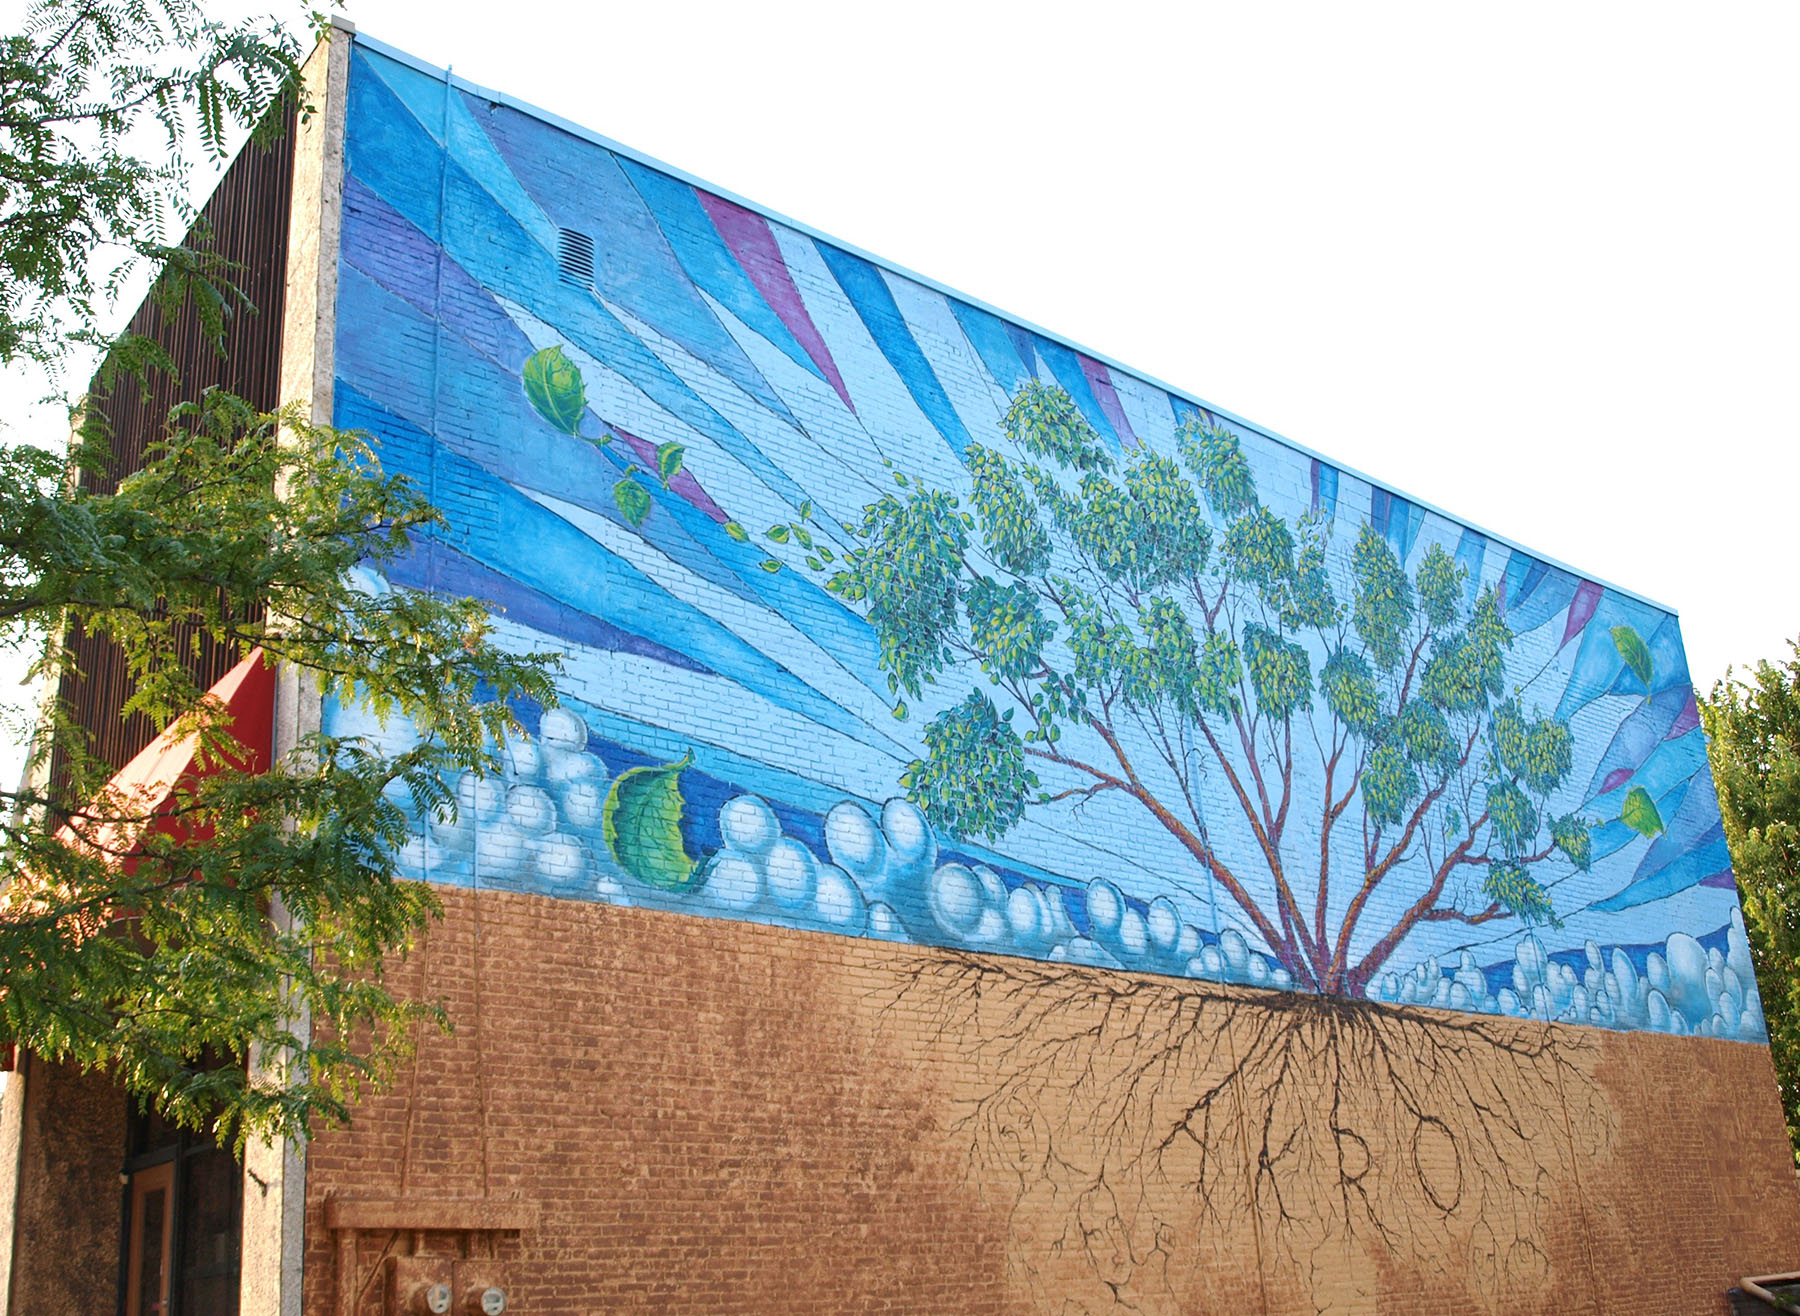 A mural adorns the outside of the Hazel Tree Interiors building.